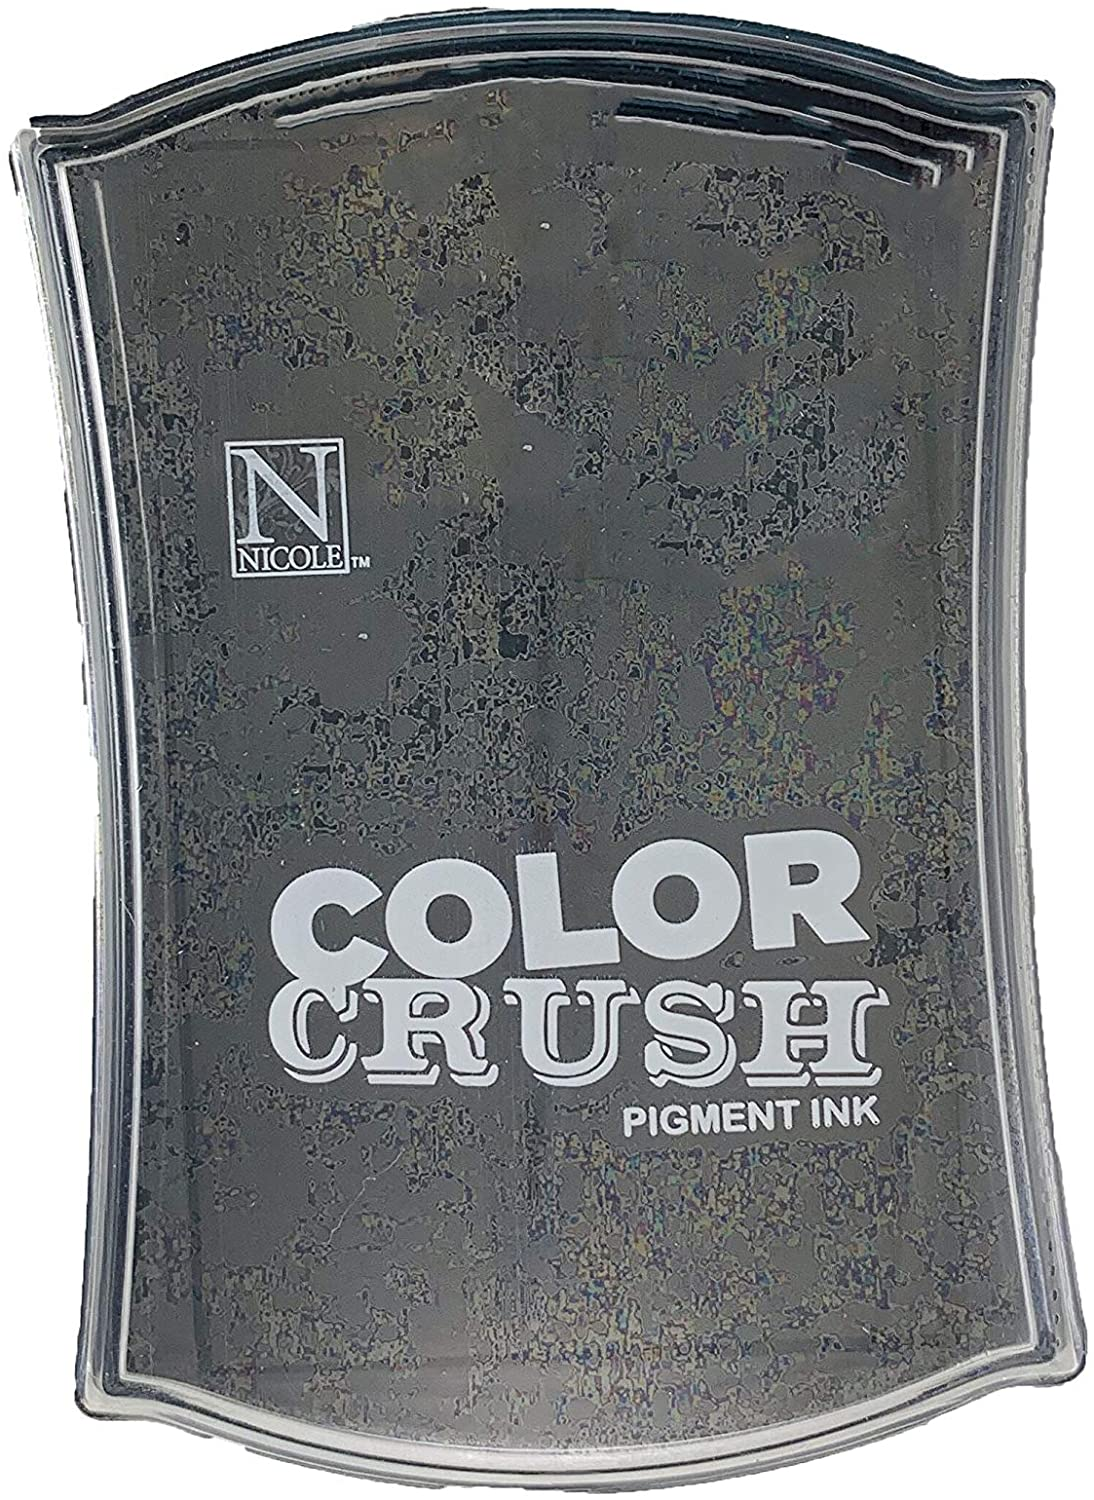 Carimbeira Color Crush Pigment Ink - Black (Preta)